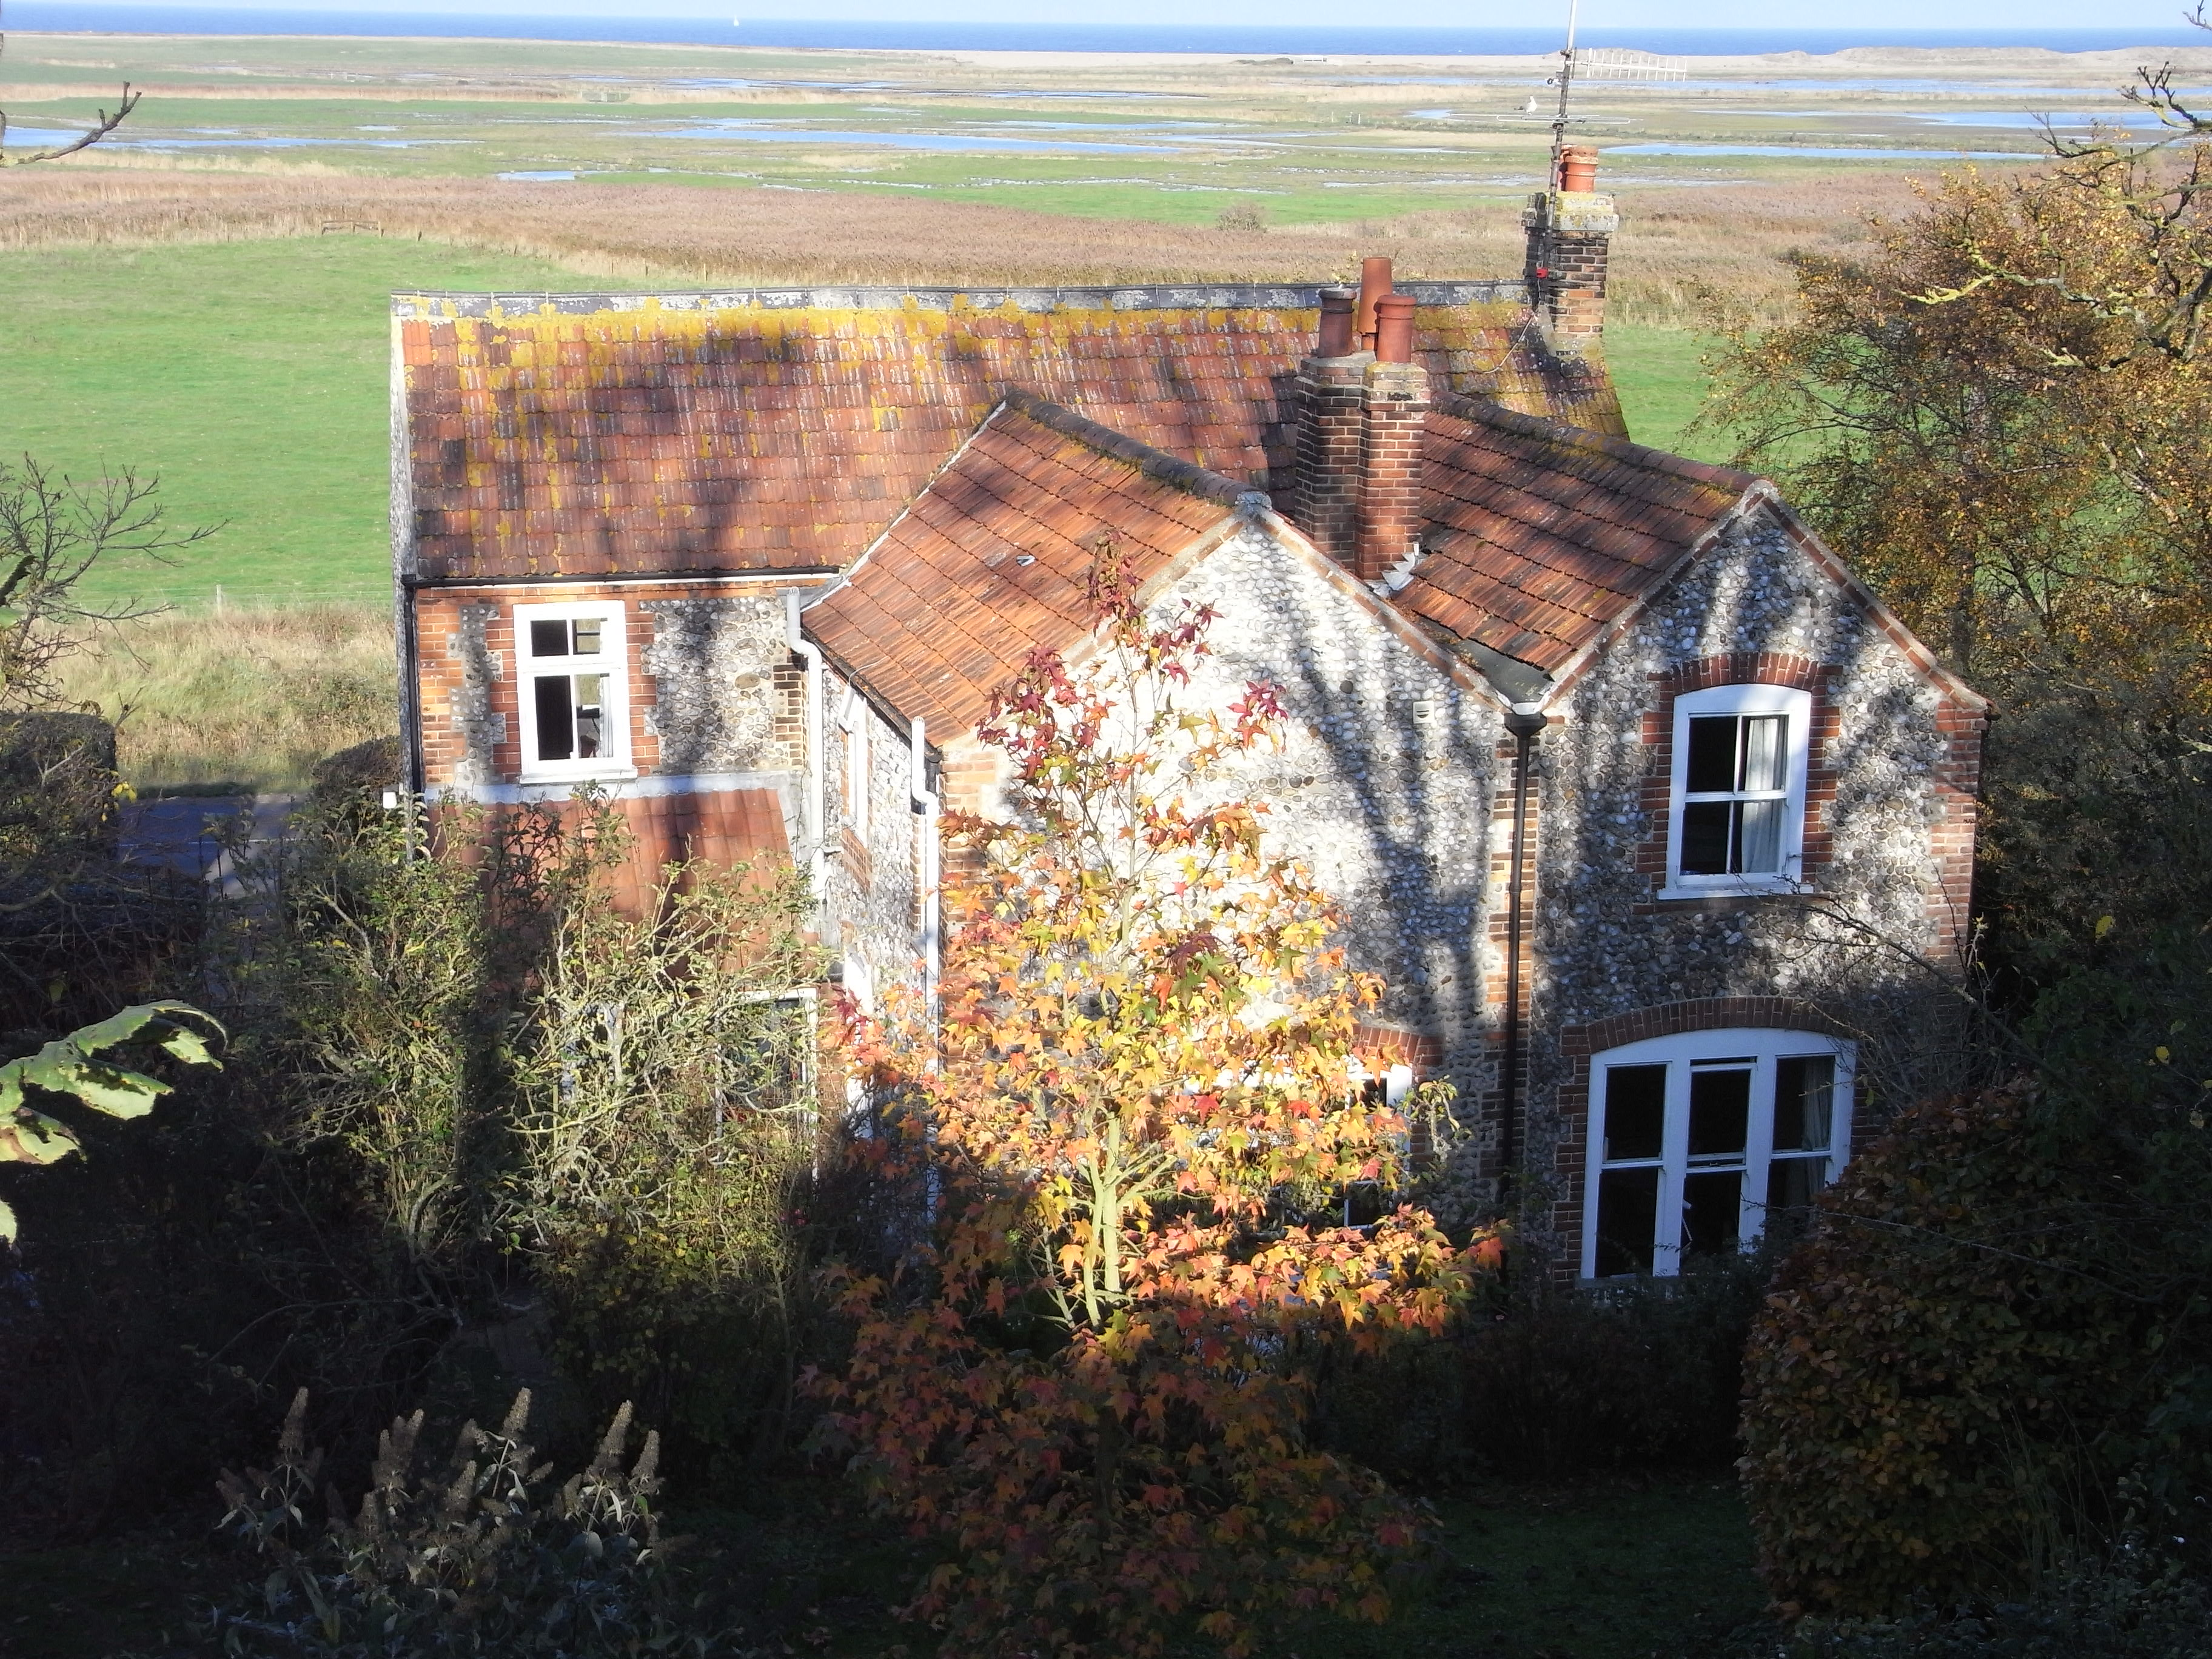 House overlooking marshes at Cley, North Norfolk